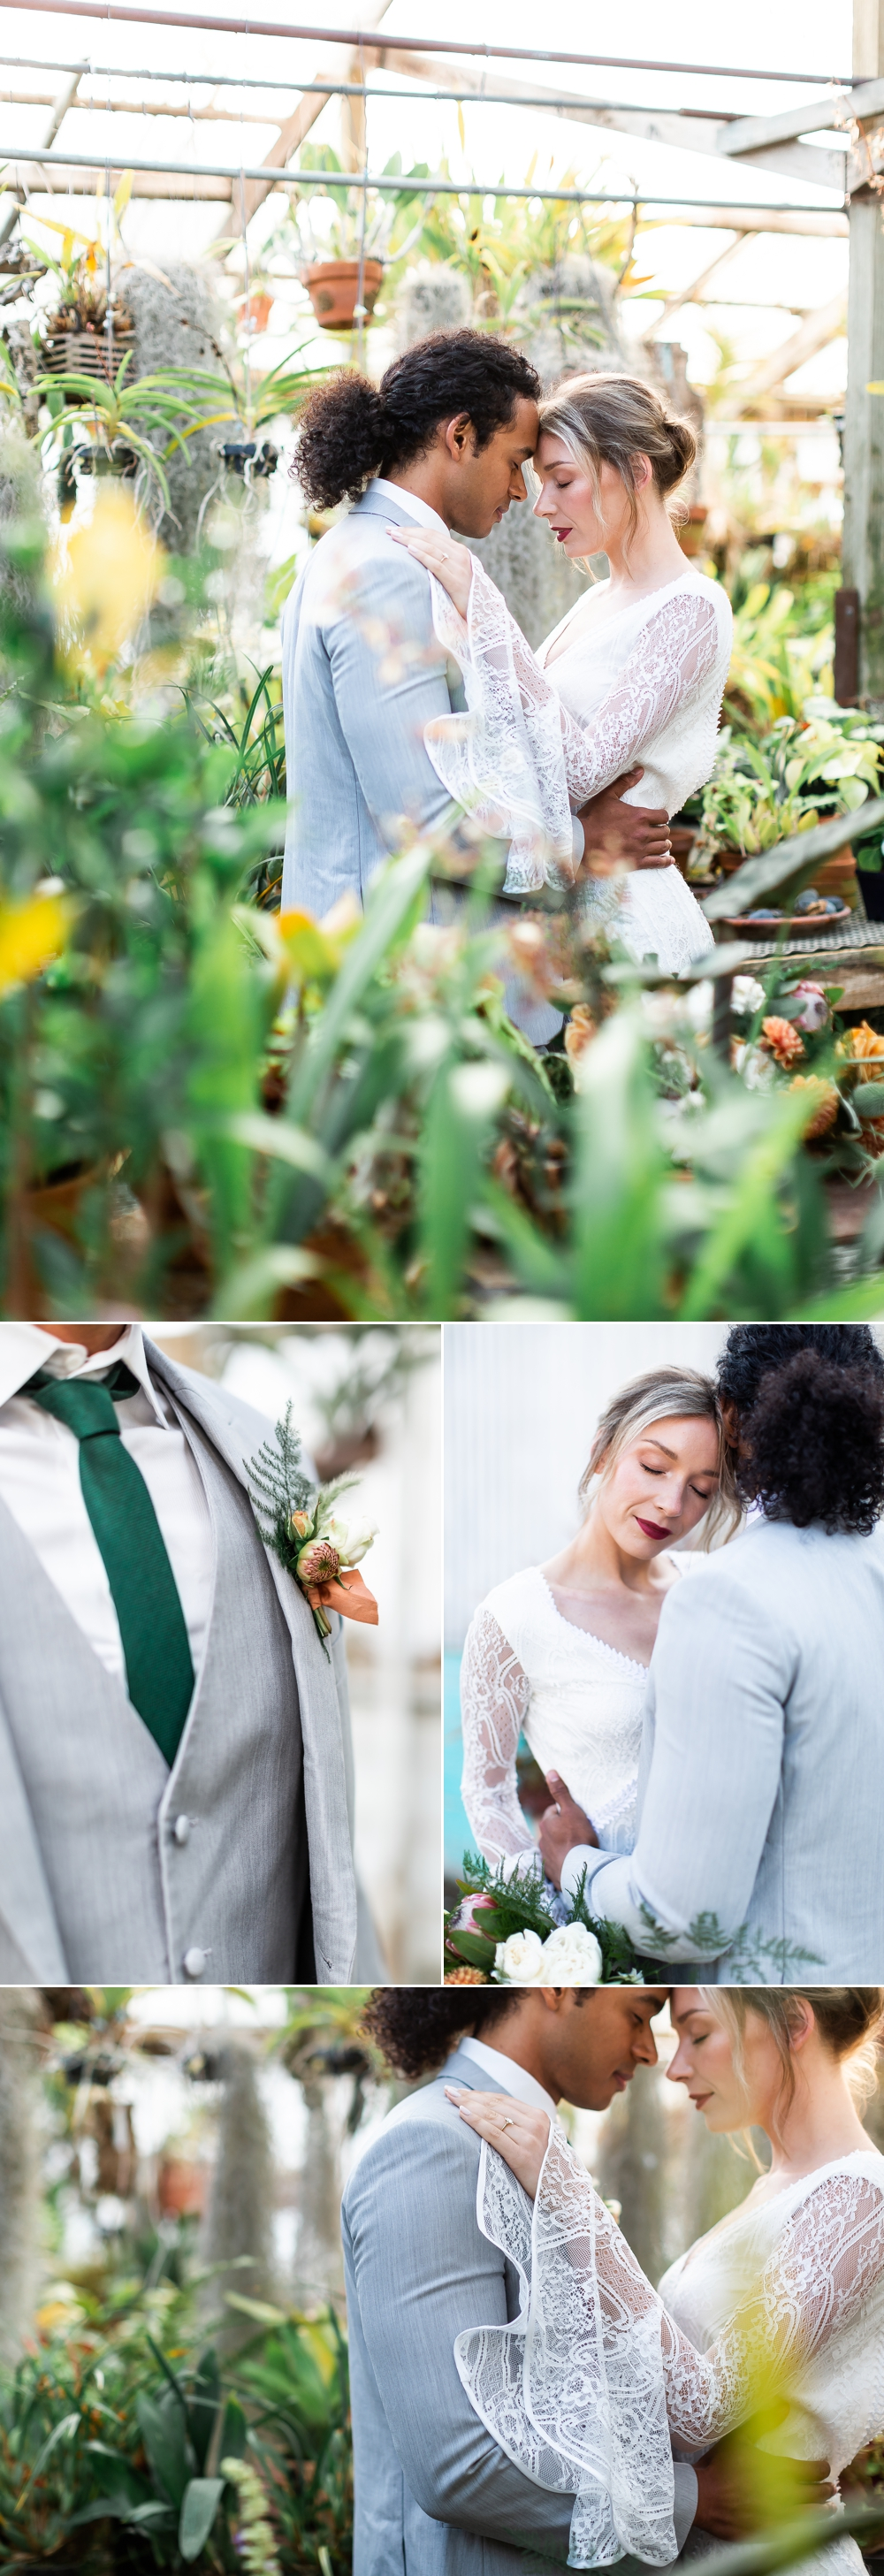 Shelldance Orchid Garden Wedding, Kreate Photography